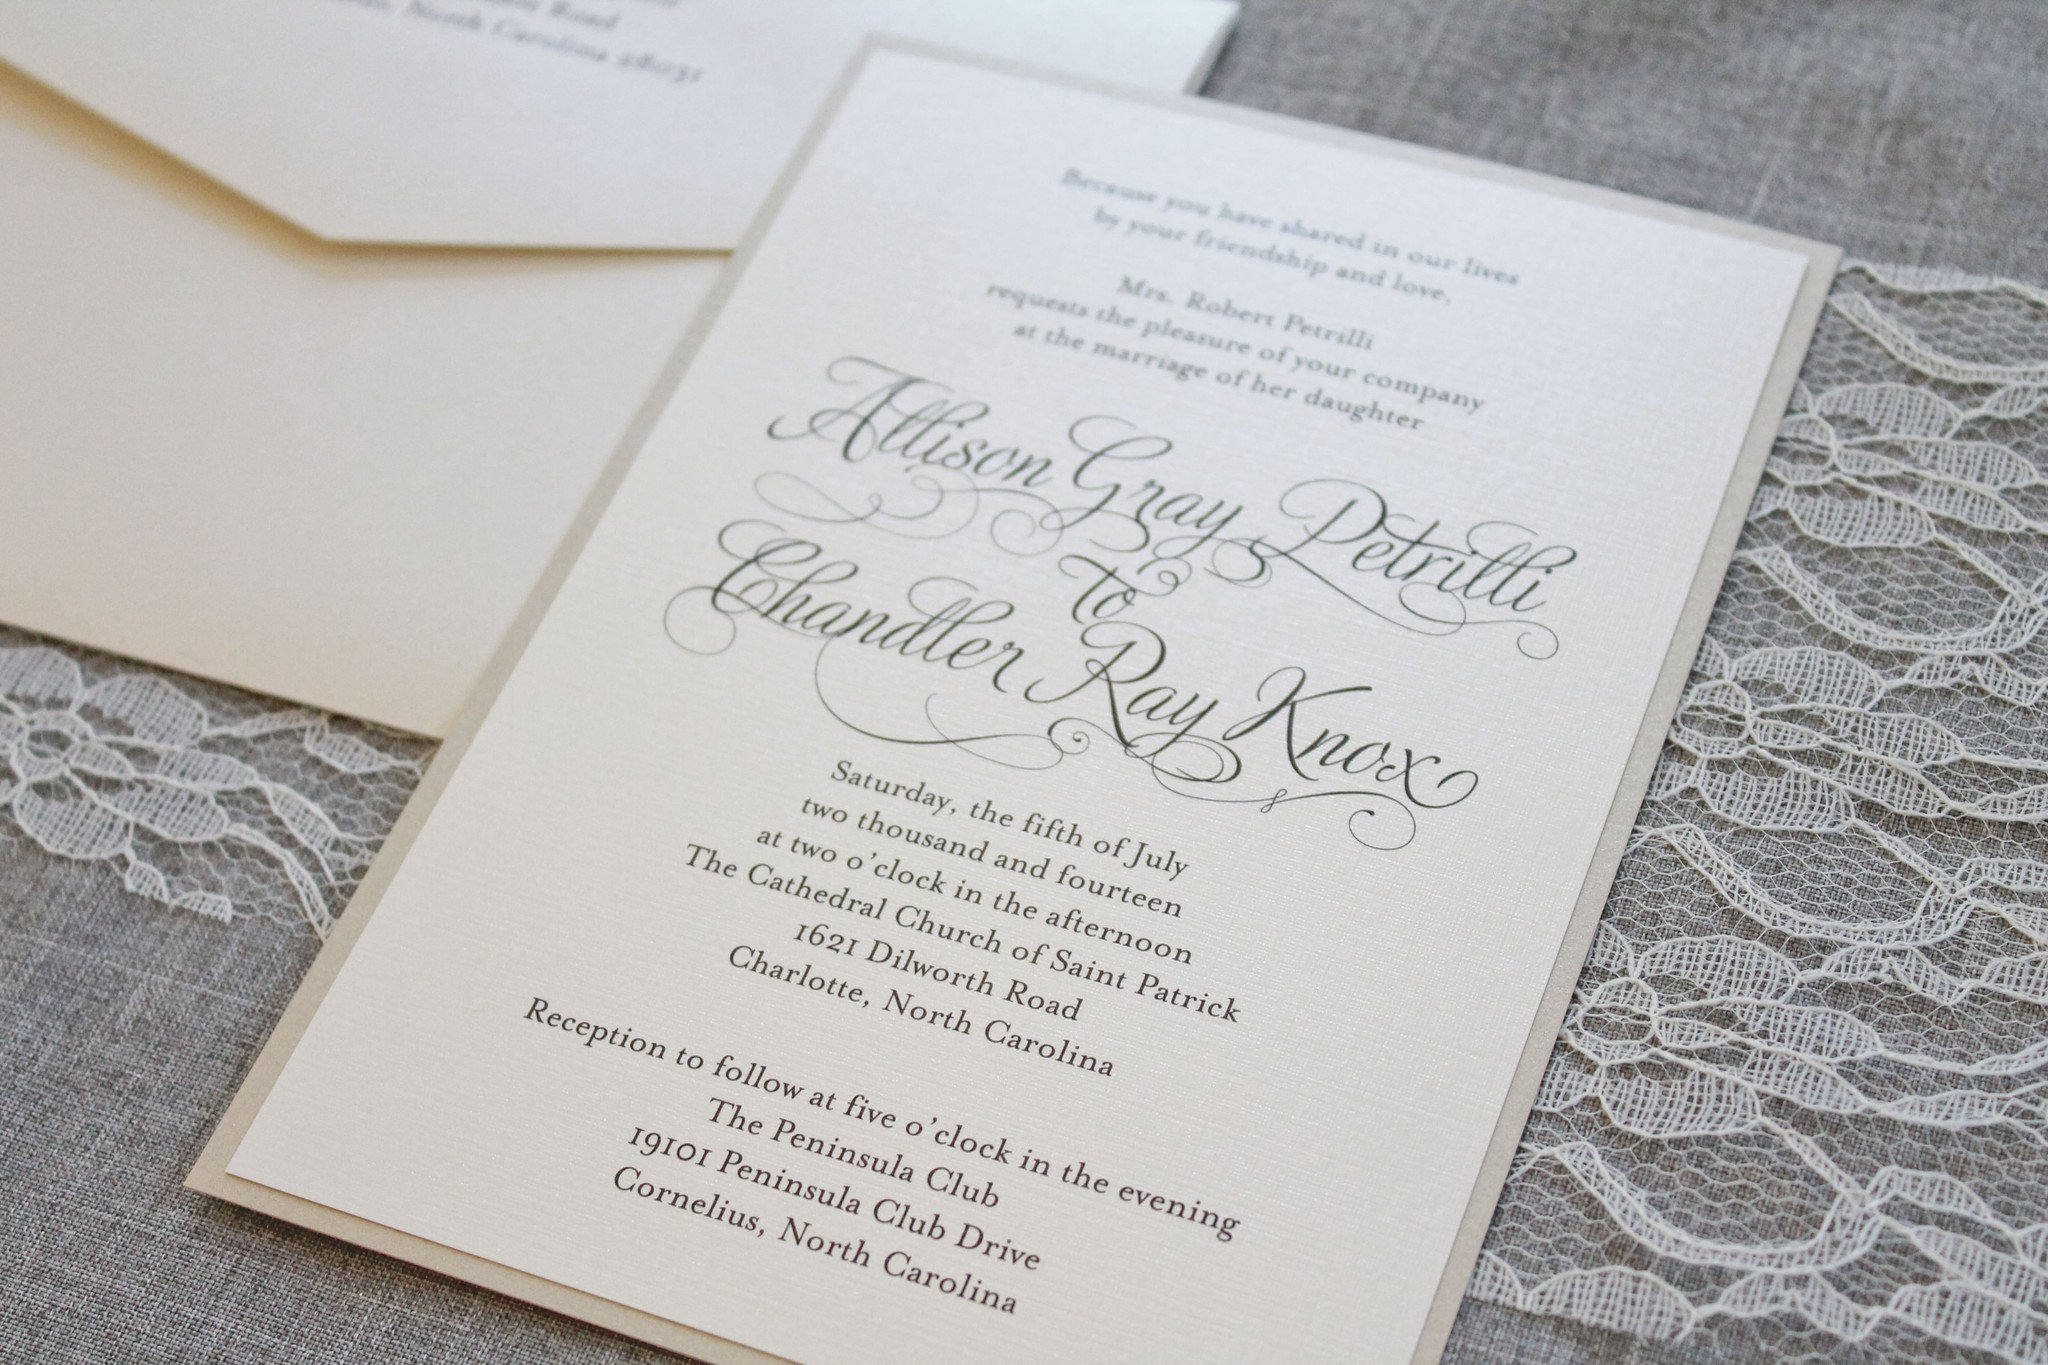 Timeless Ivory Gold Wedding With Scottish Traditions In: Ivory Wedding Invitations Gold Formal Wedding Ceremony